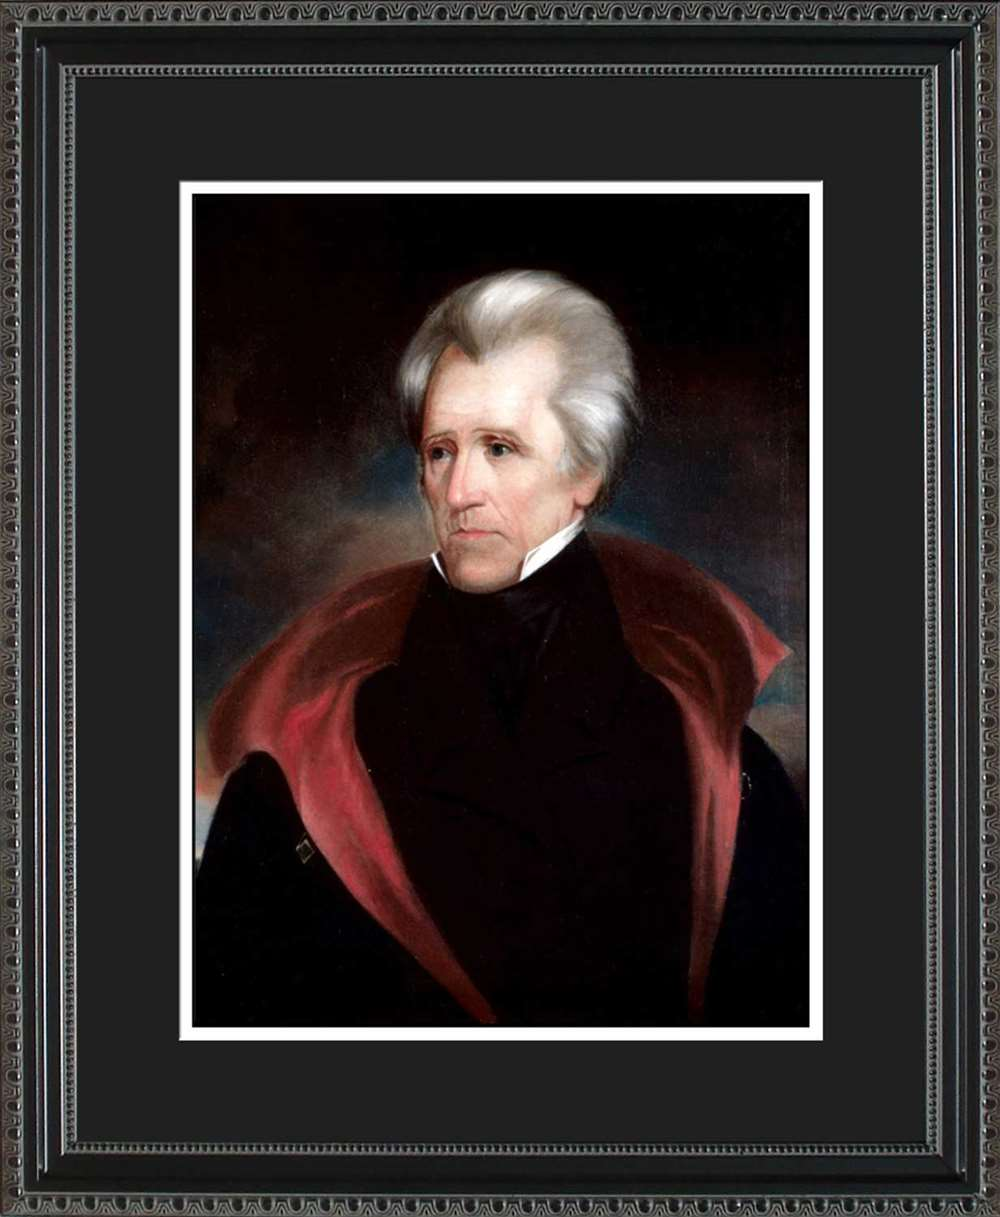 Andrew Jackson Official President Portrait, 16x20